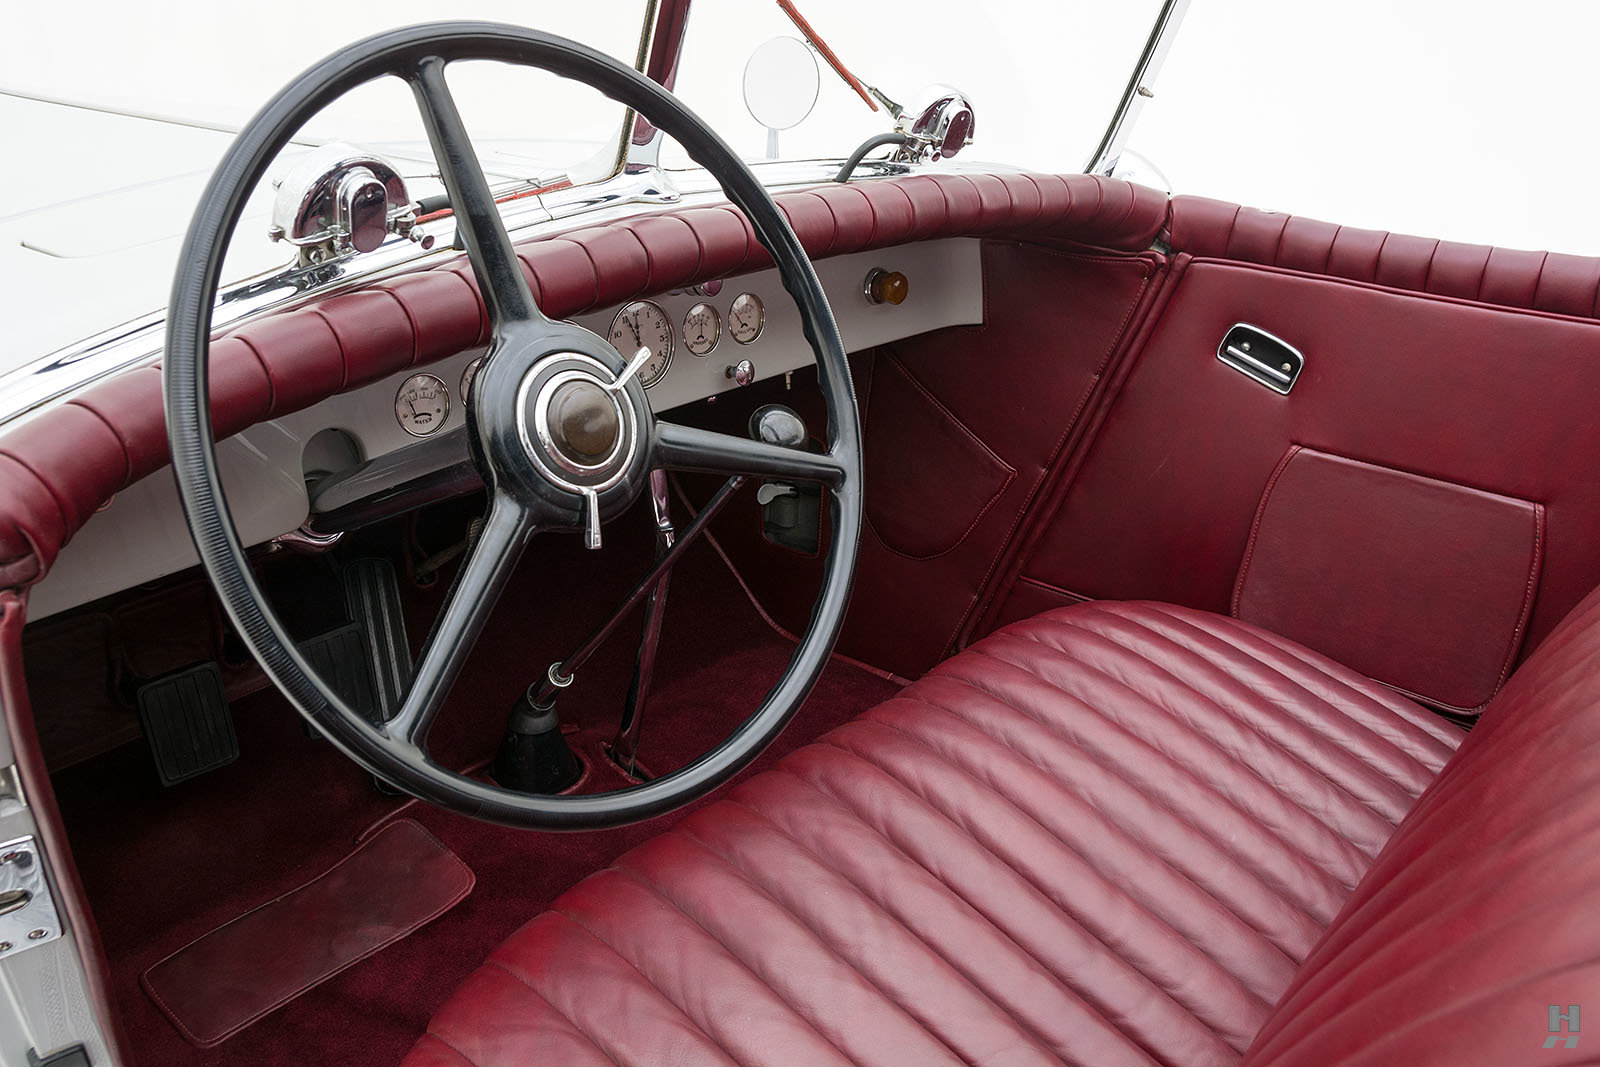 1931 Chrysler CG Imperial Roadster For Sale (picture 4 of 6)